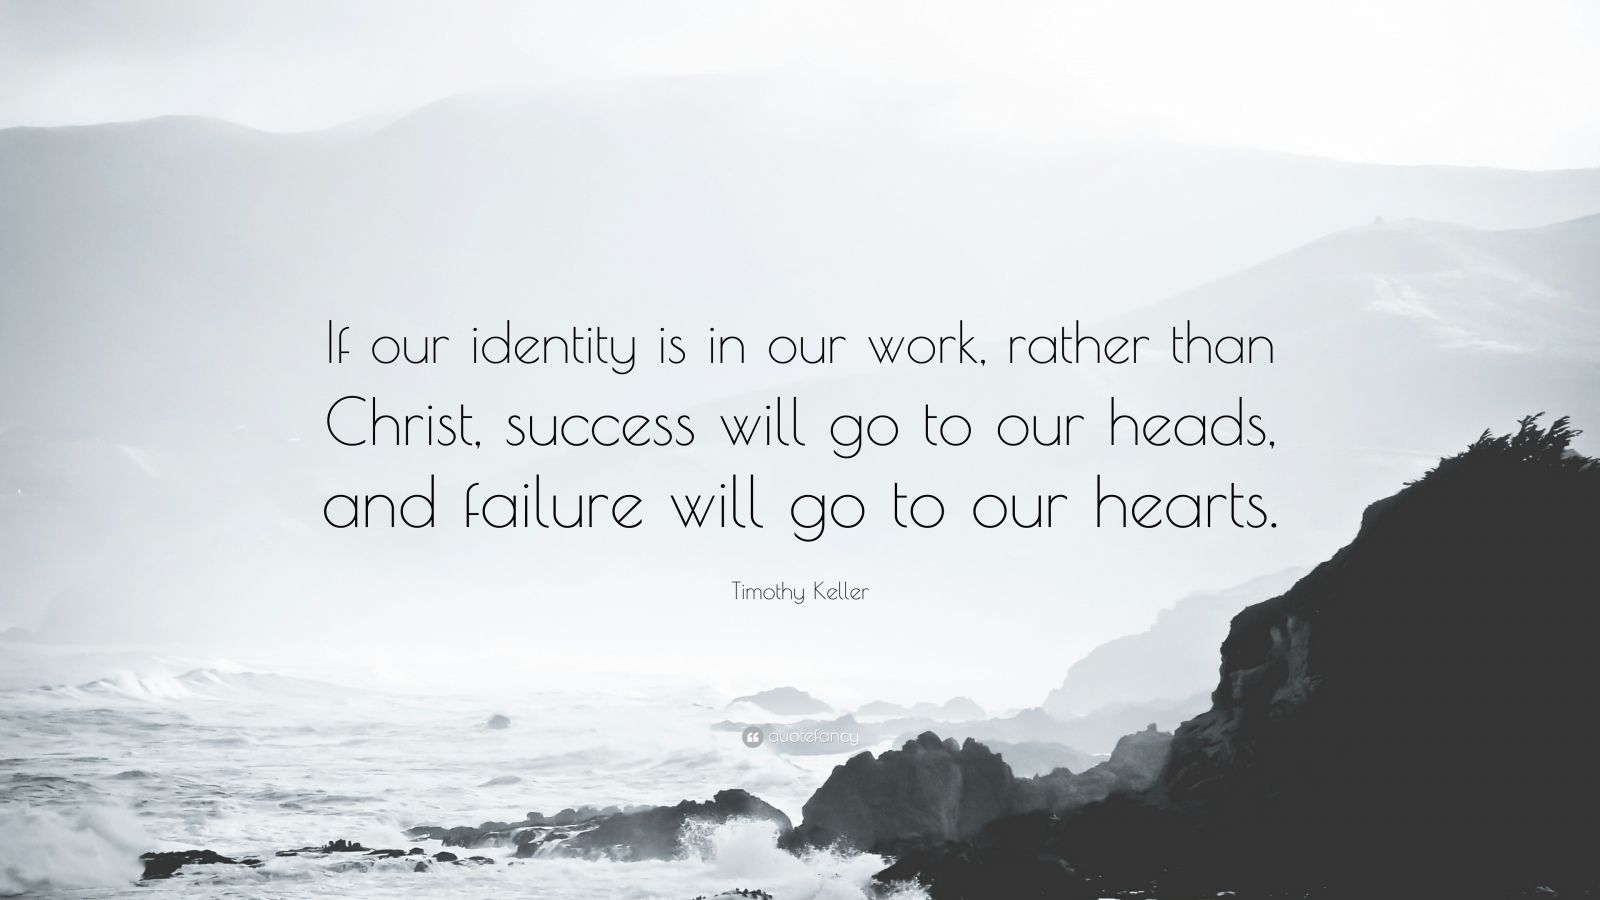 """Timothy Keller Quote: """"If our identity is in our work, rather than Christ, success will go to our heads, and failure will go to our hearts."""""""